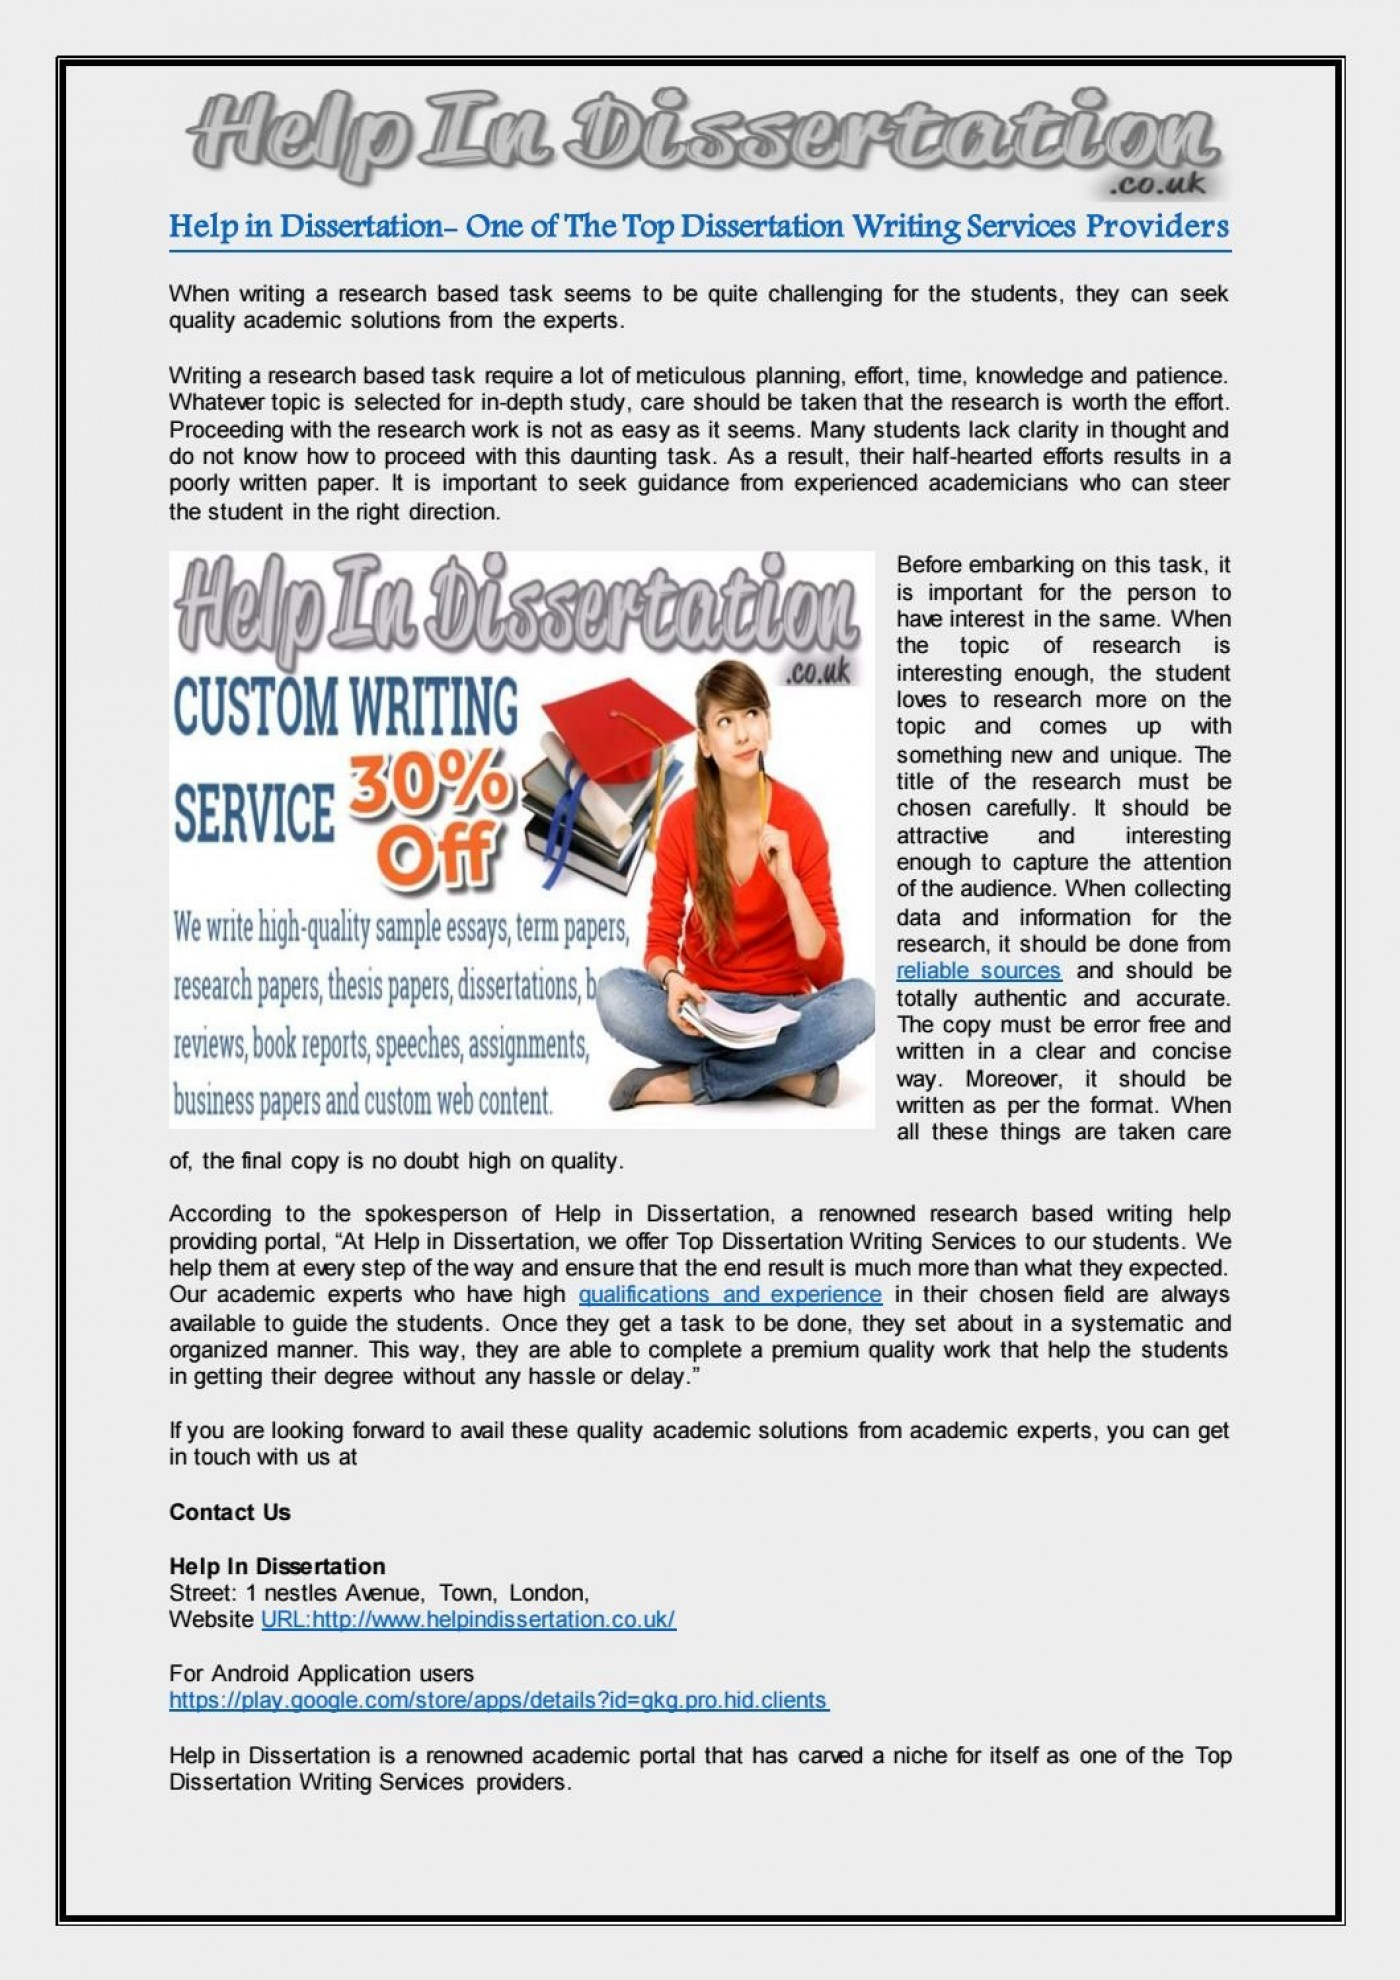 027 Research Paper Best Fearsome Websites Top Writing 1400